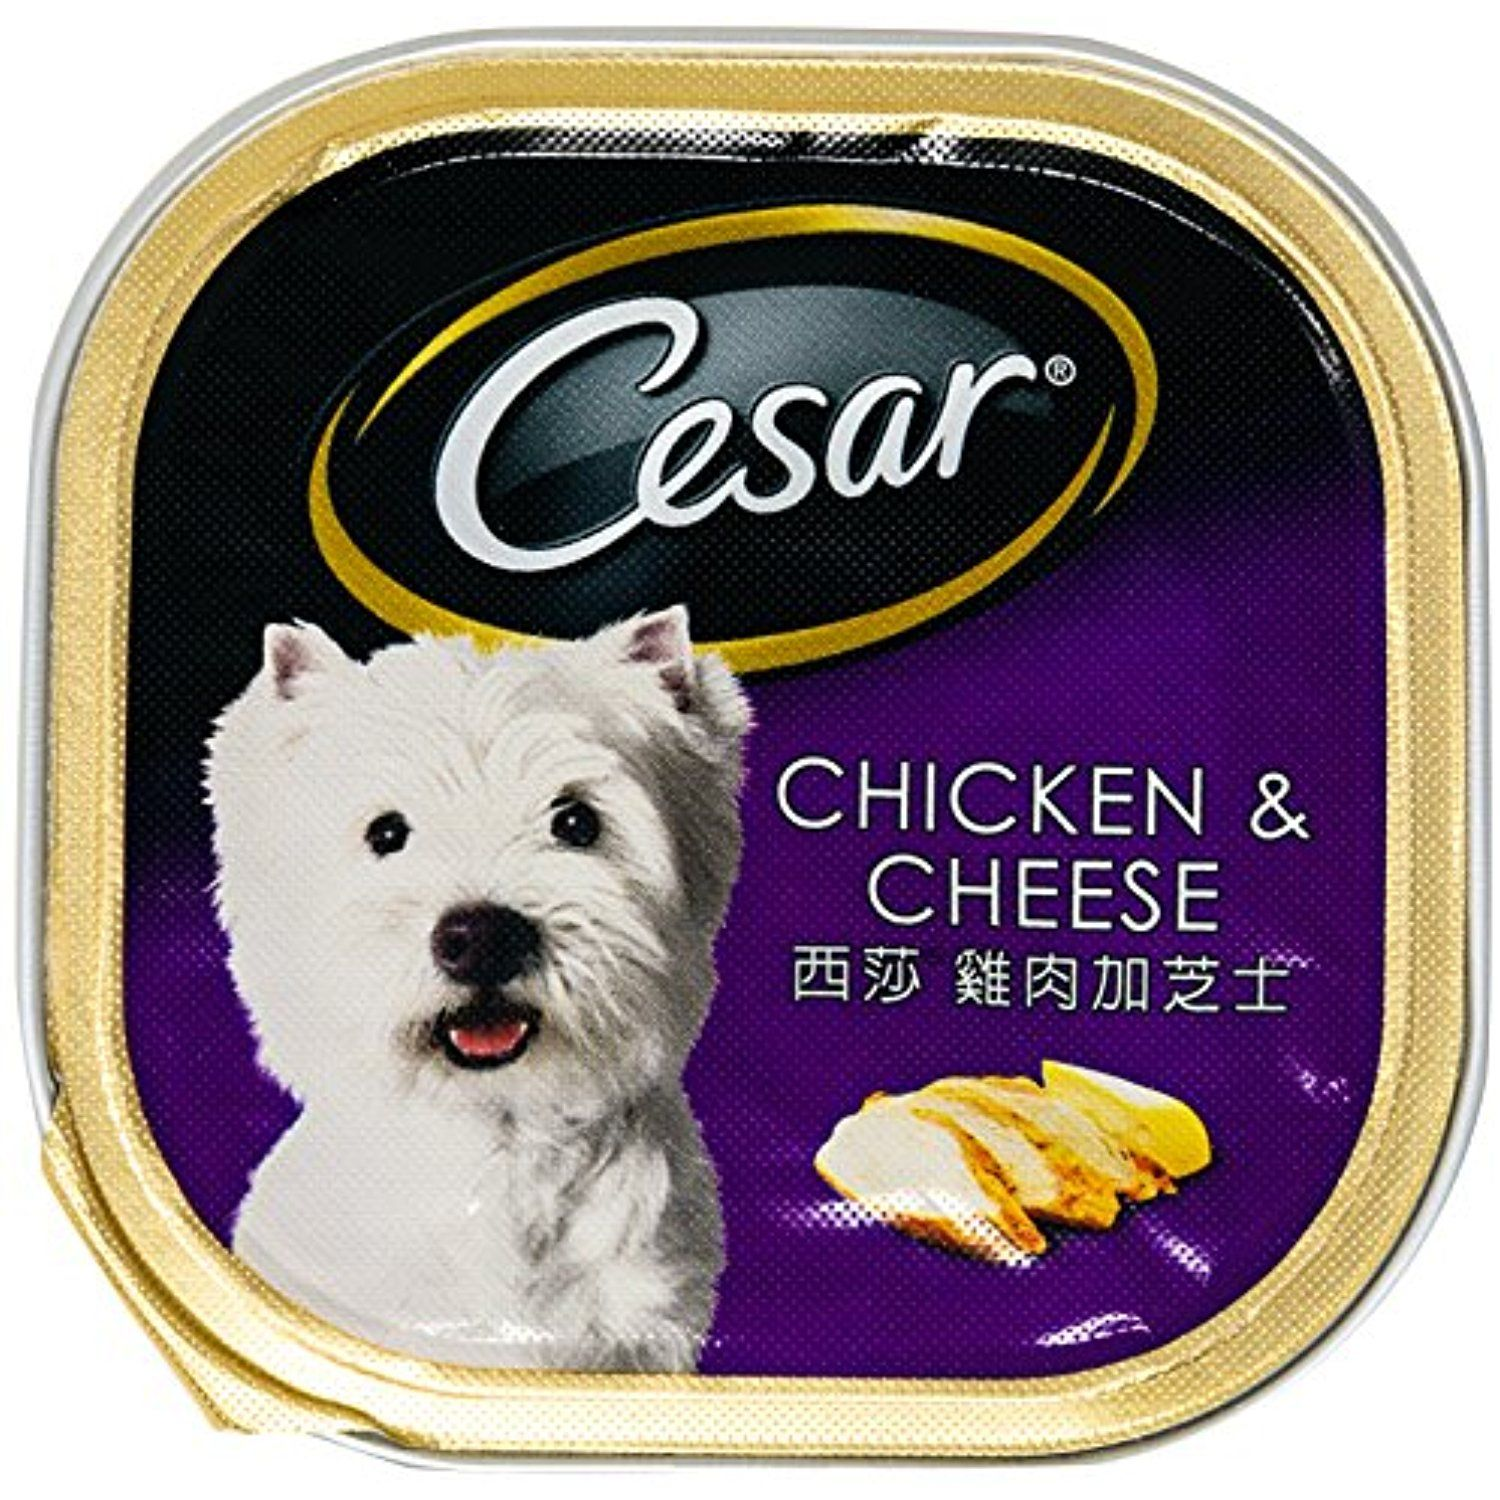 Cesar Dog Food With Chicken Cheese Flavor 100 G 3 52 Oz You